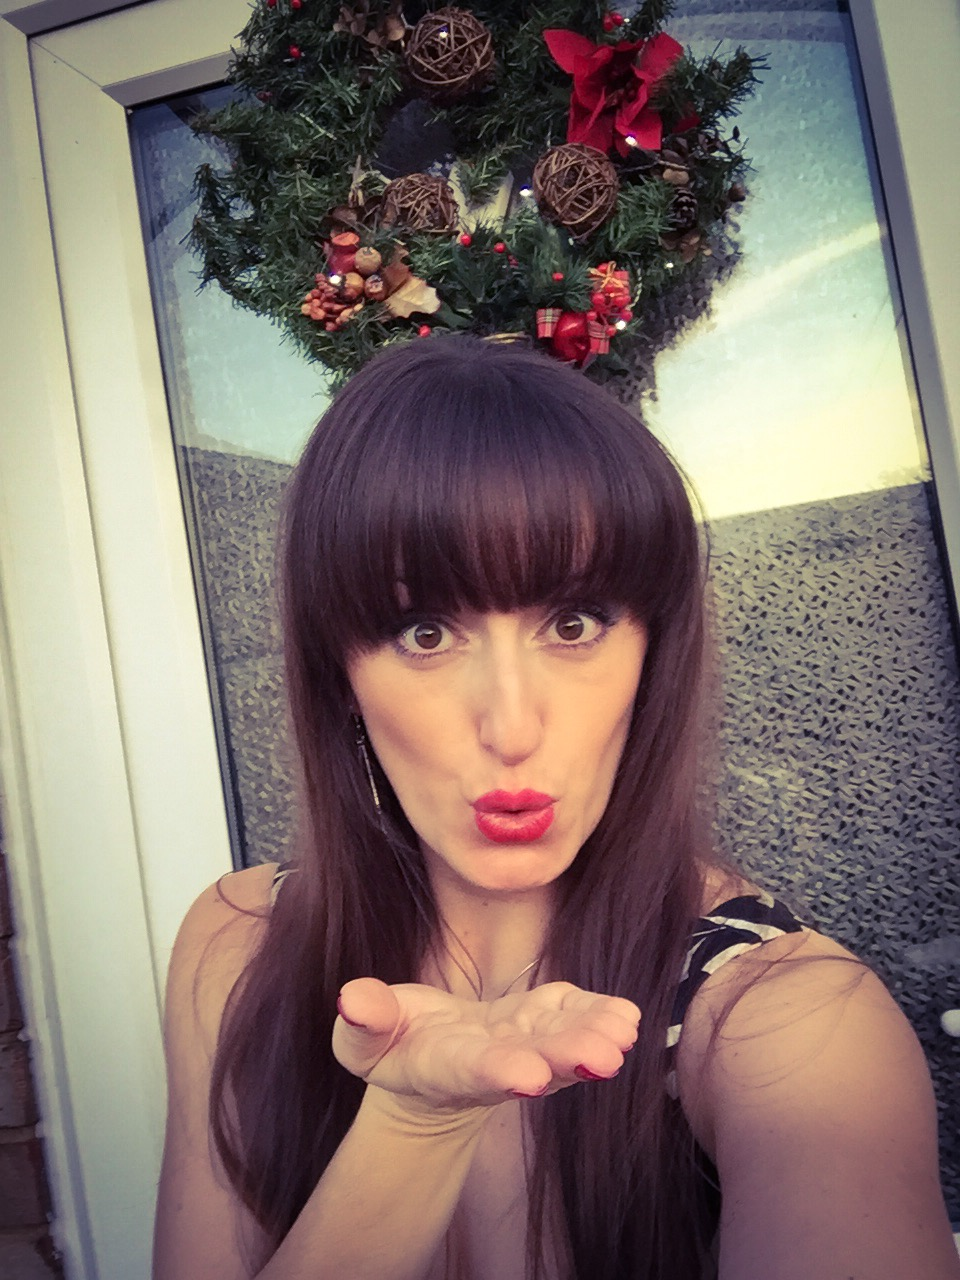 Christmas kisses from your dance instructor xxx